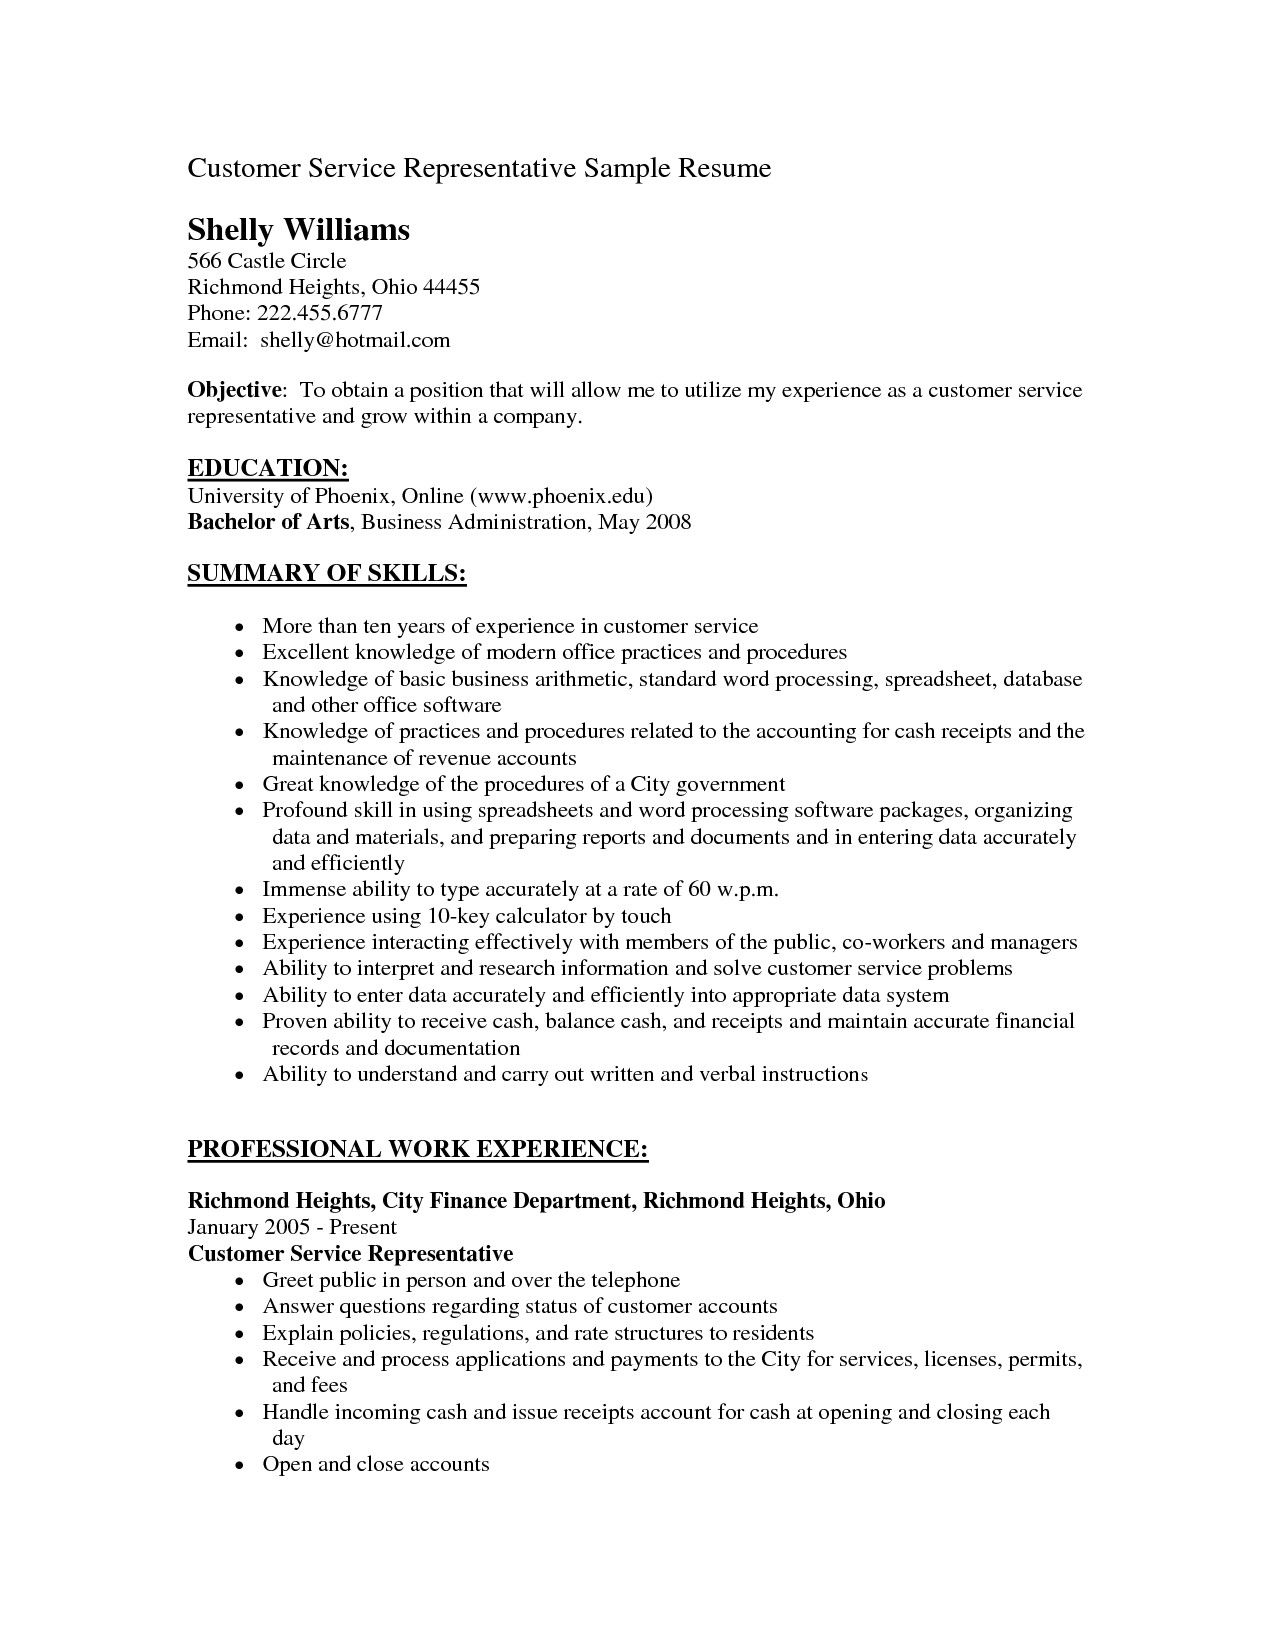 hiring manager resume sample new customer service objectives of special hiri objective Resume Customer Service Experience Resume Objective